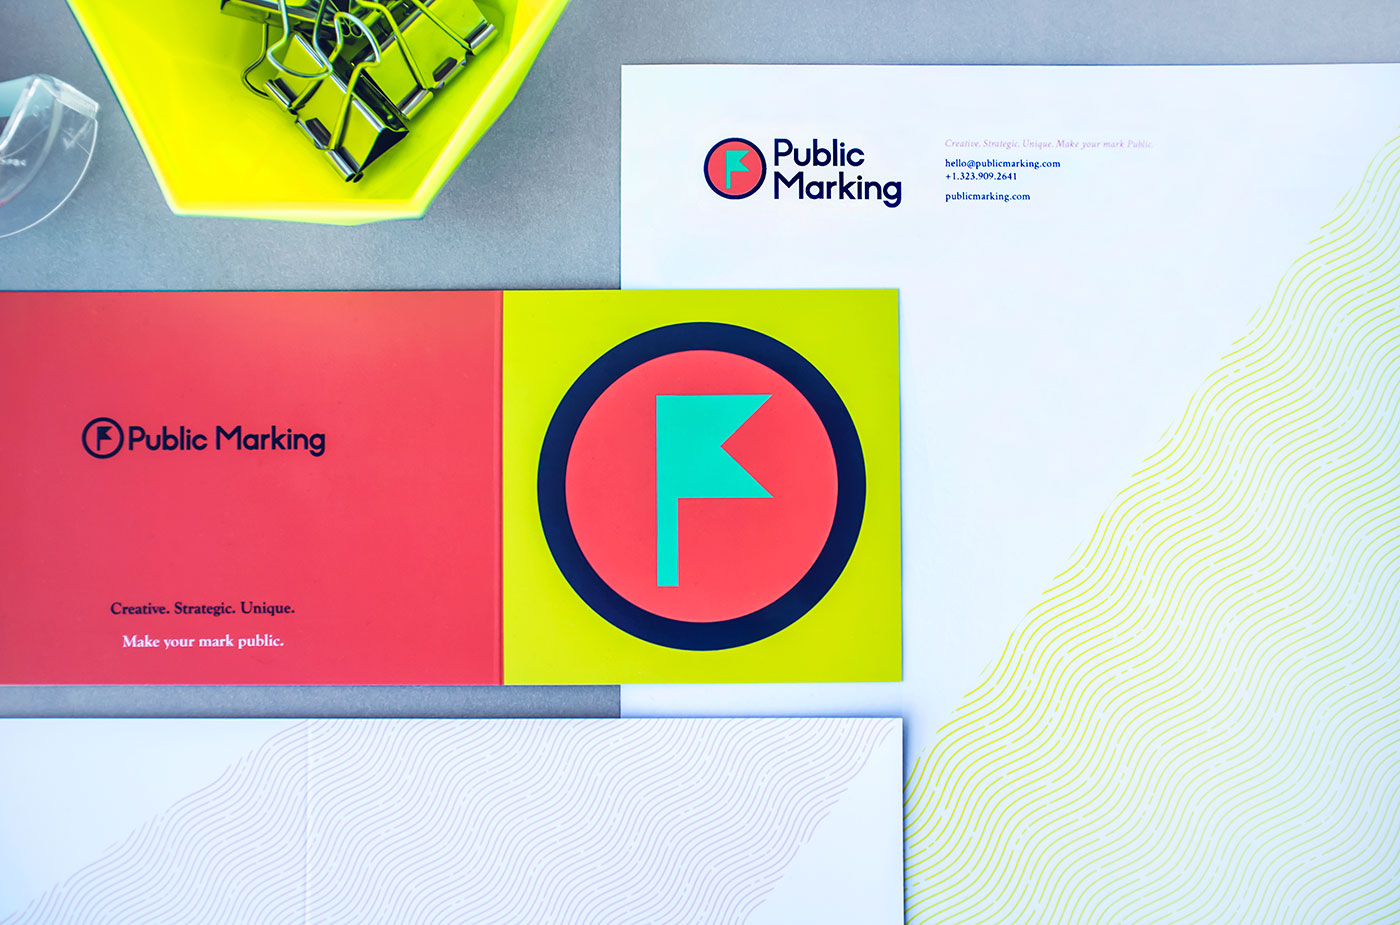 Outfit Branding & Design Public Marking Stationery